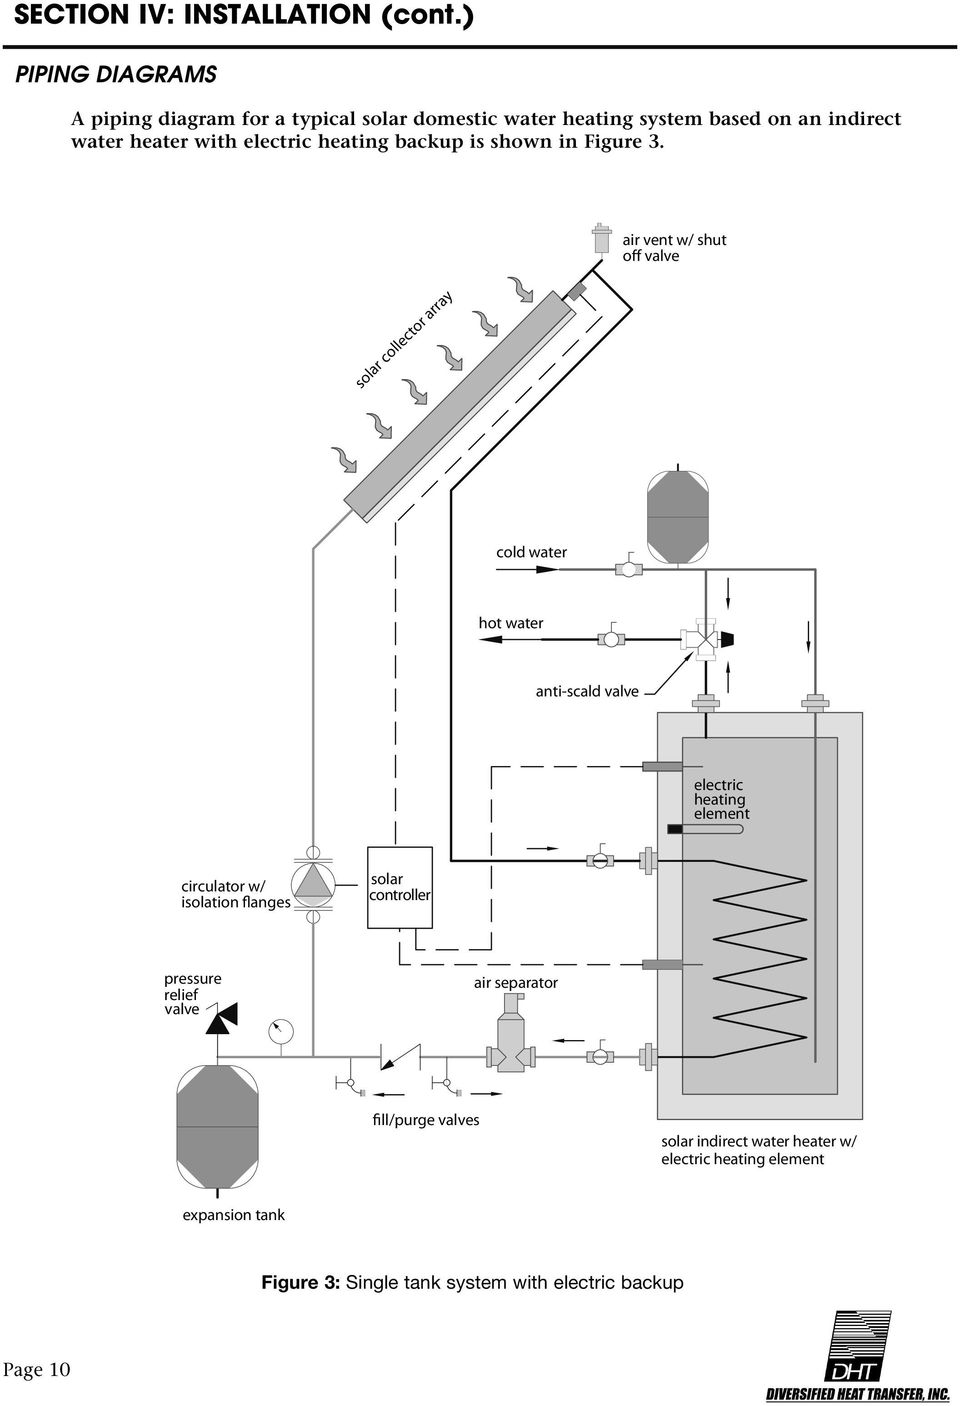 heating backup is shown in Figure 3.